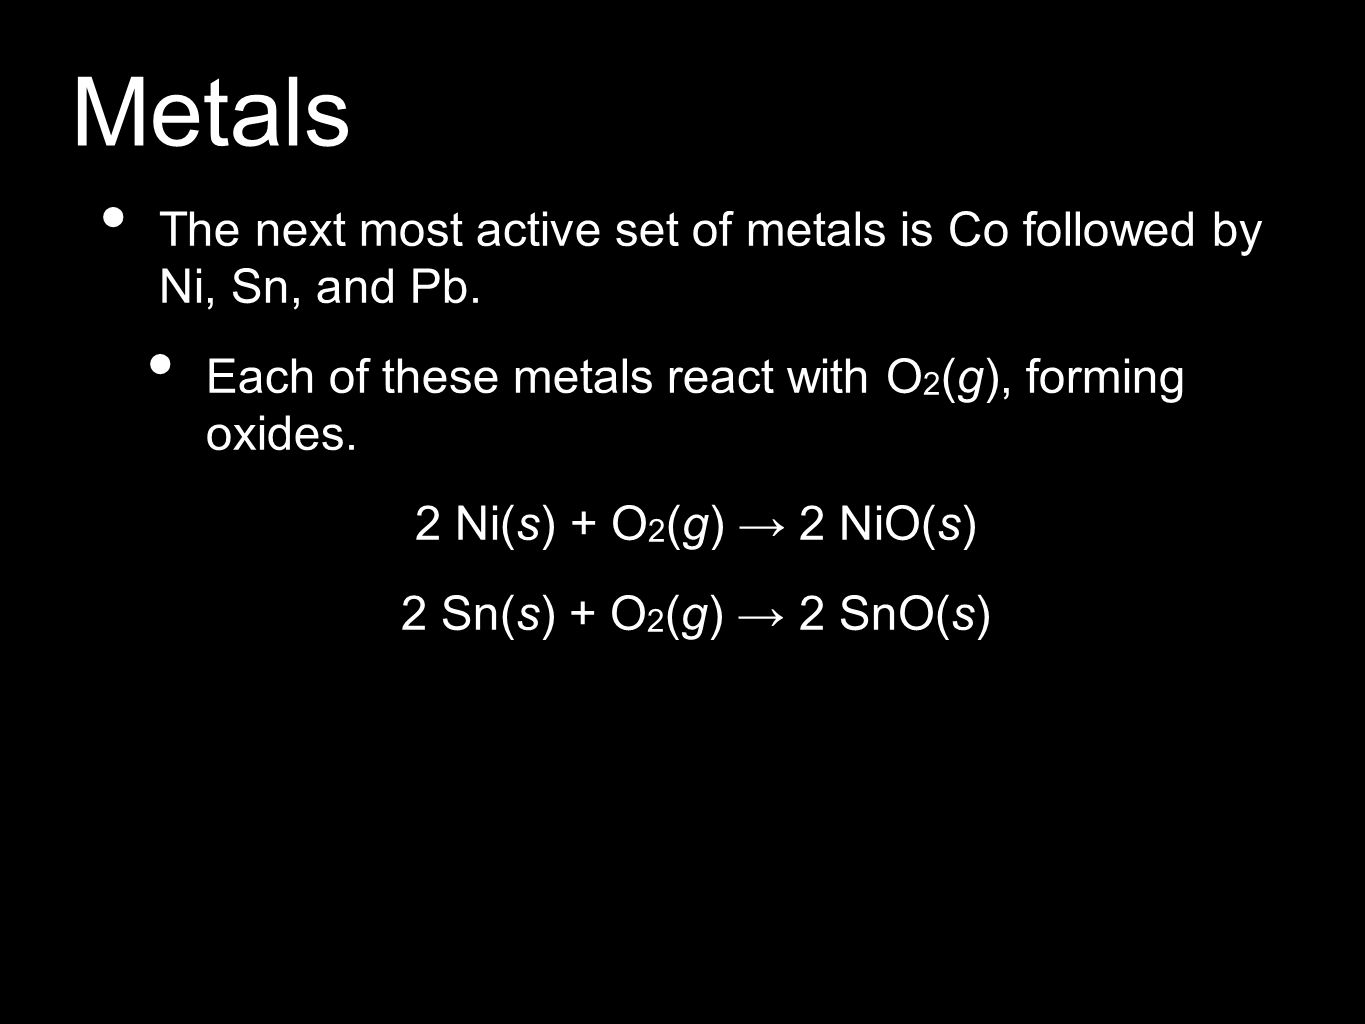 Metals The next most active set of metals is Co followed by Ni, Sn, and Pb. Each of these metals react with O2(g), forming oxides.